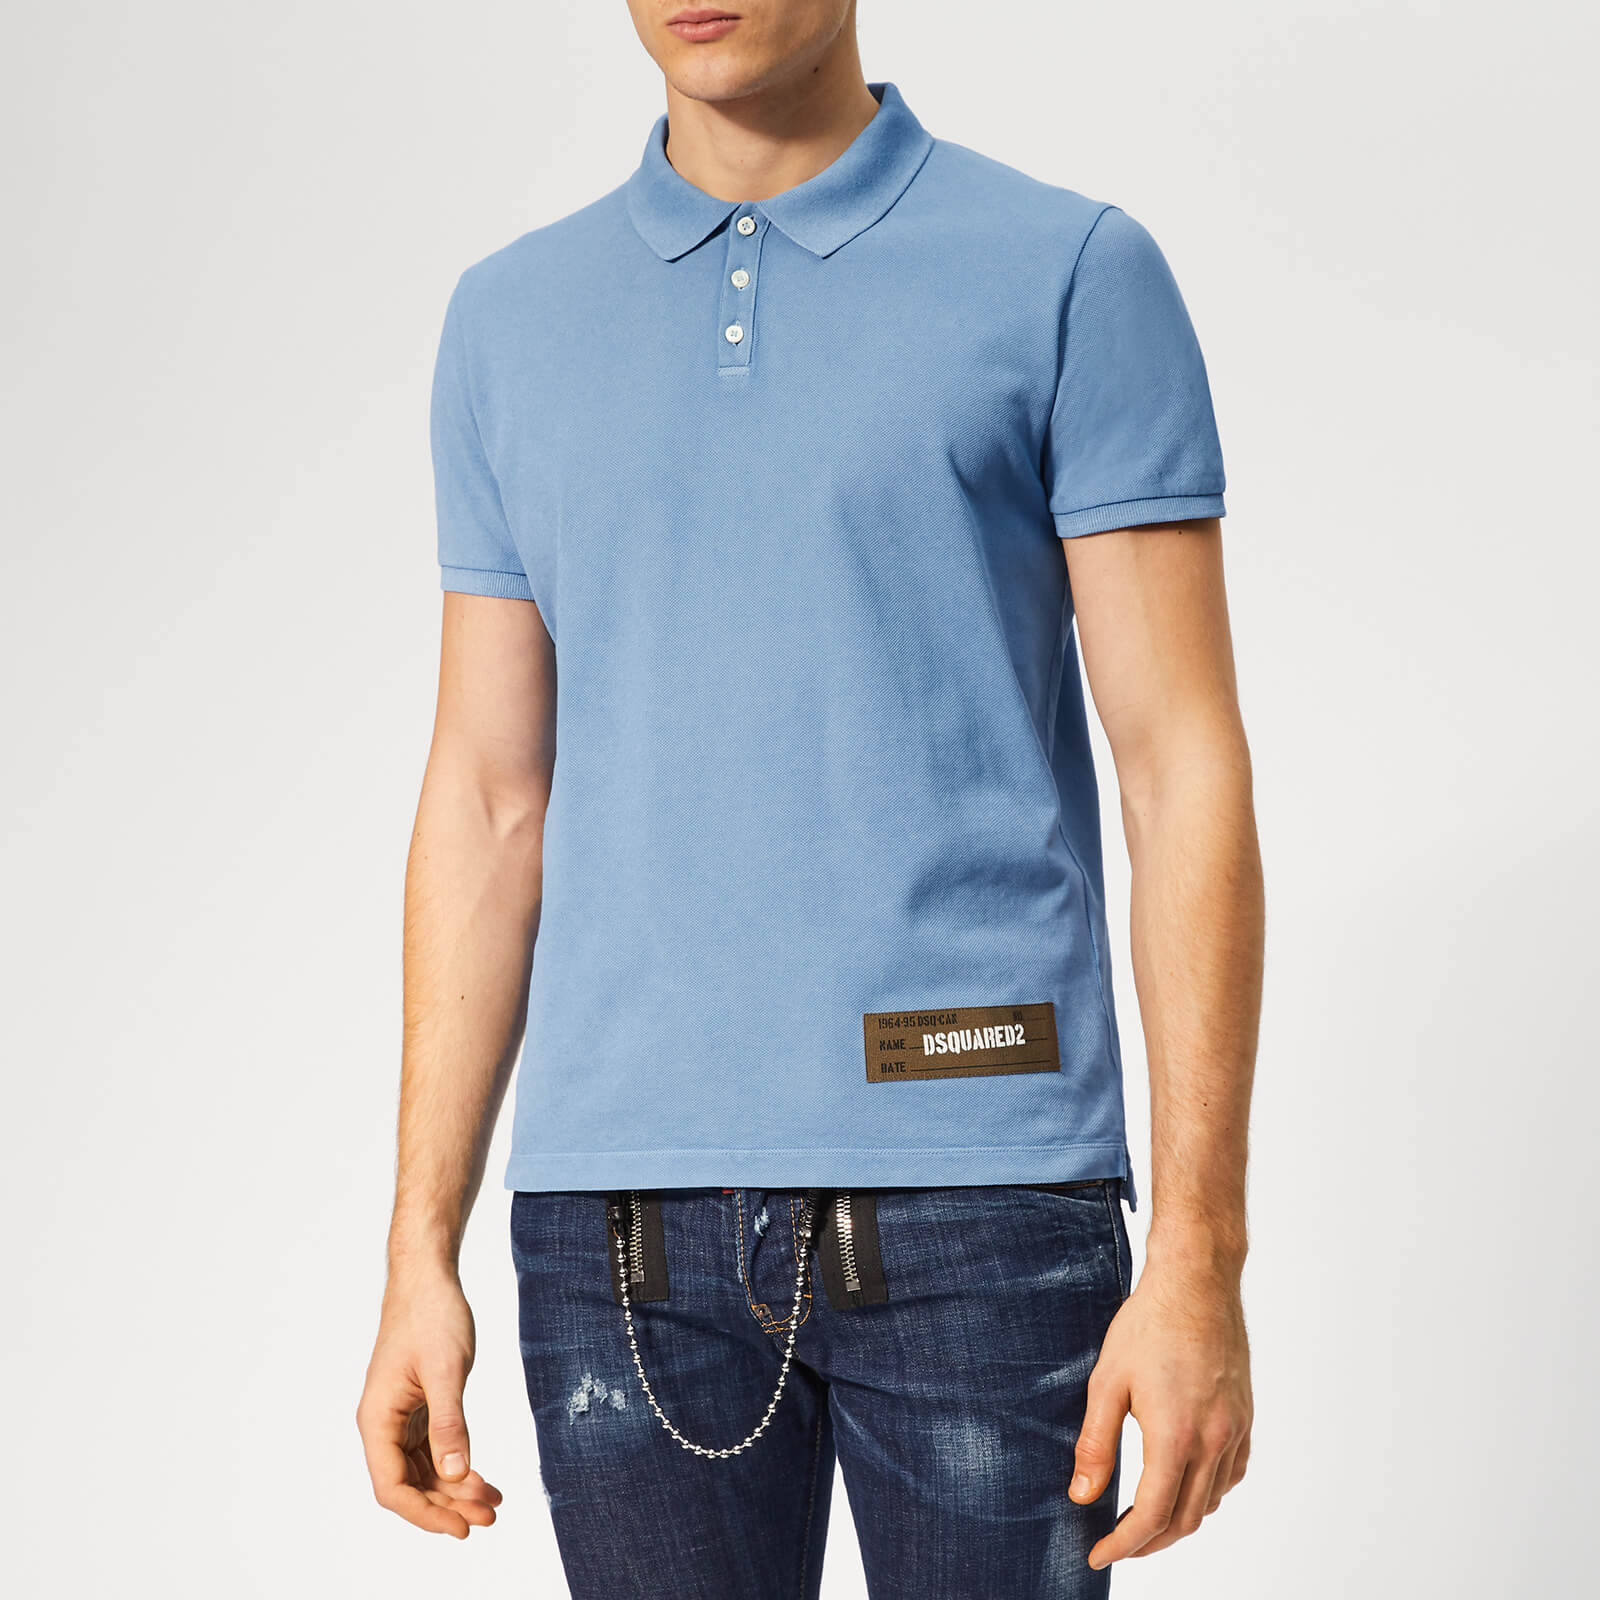 da2833d3 Dsquared2 Men's Classic Fit Polo Shirt - Blue - Free UK Delivery over £50